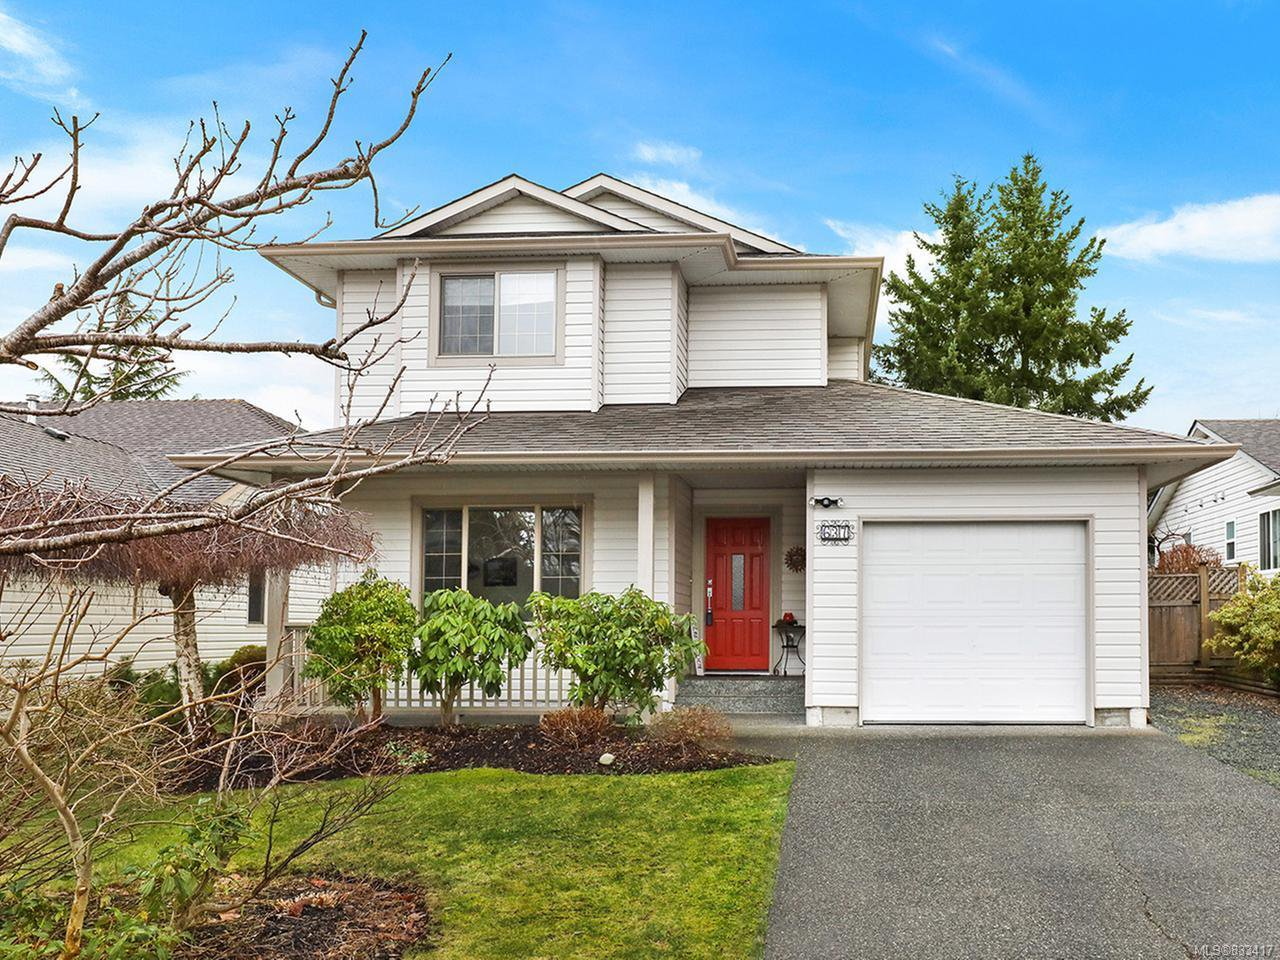 Main Photo: 637 Alexander Dr in CAMPBELL RIVER: CR Willow Point House for sale (Campbell River)  : MLS®# 833417